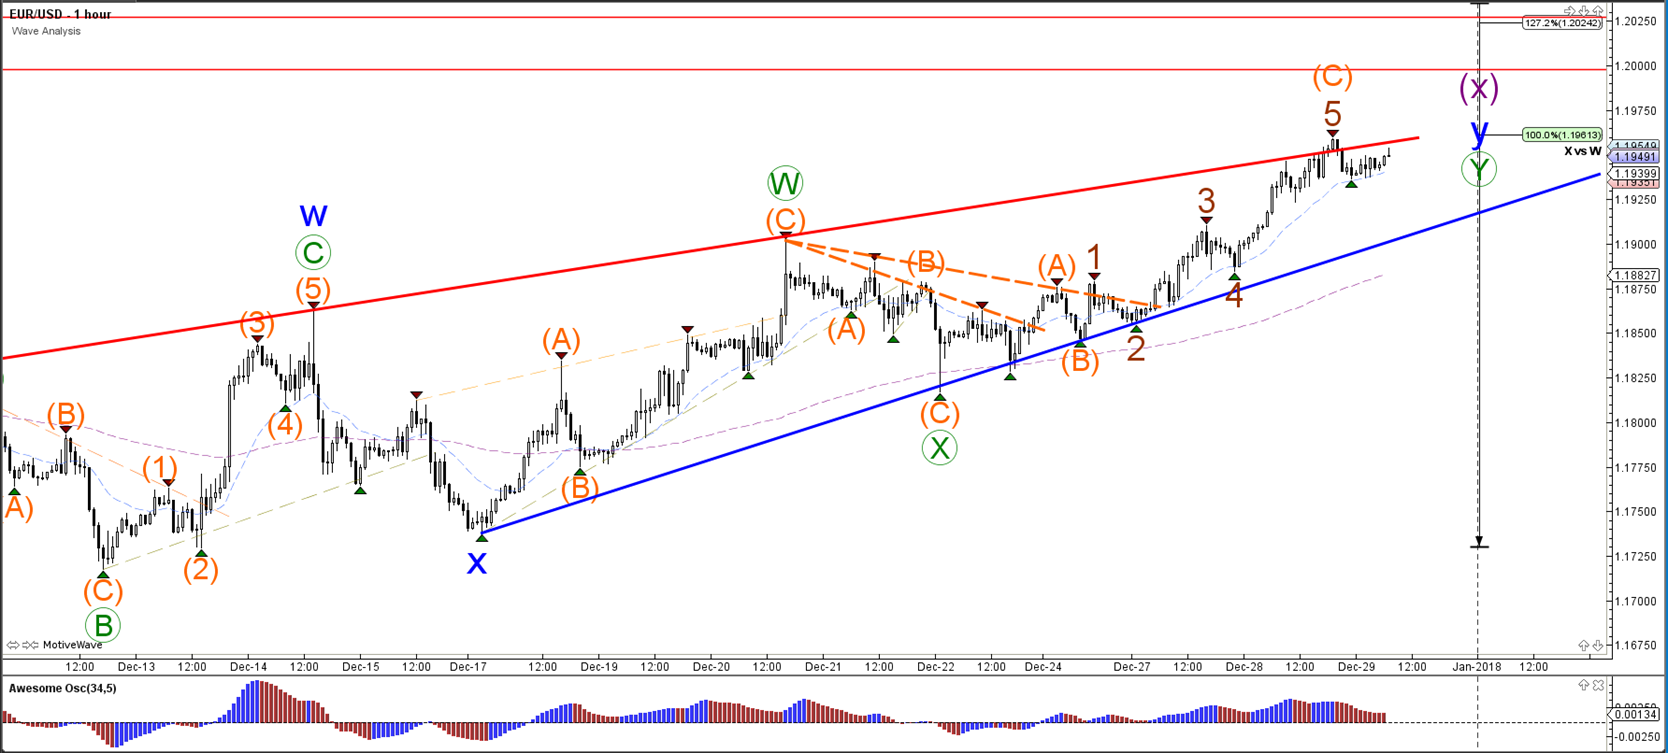 EUR/USD Approaches 1.20, GBP/USD at 1.35 Resistance - MTrading